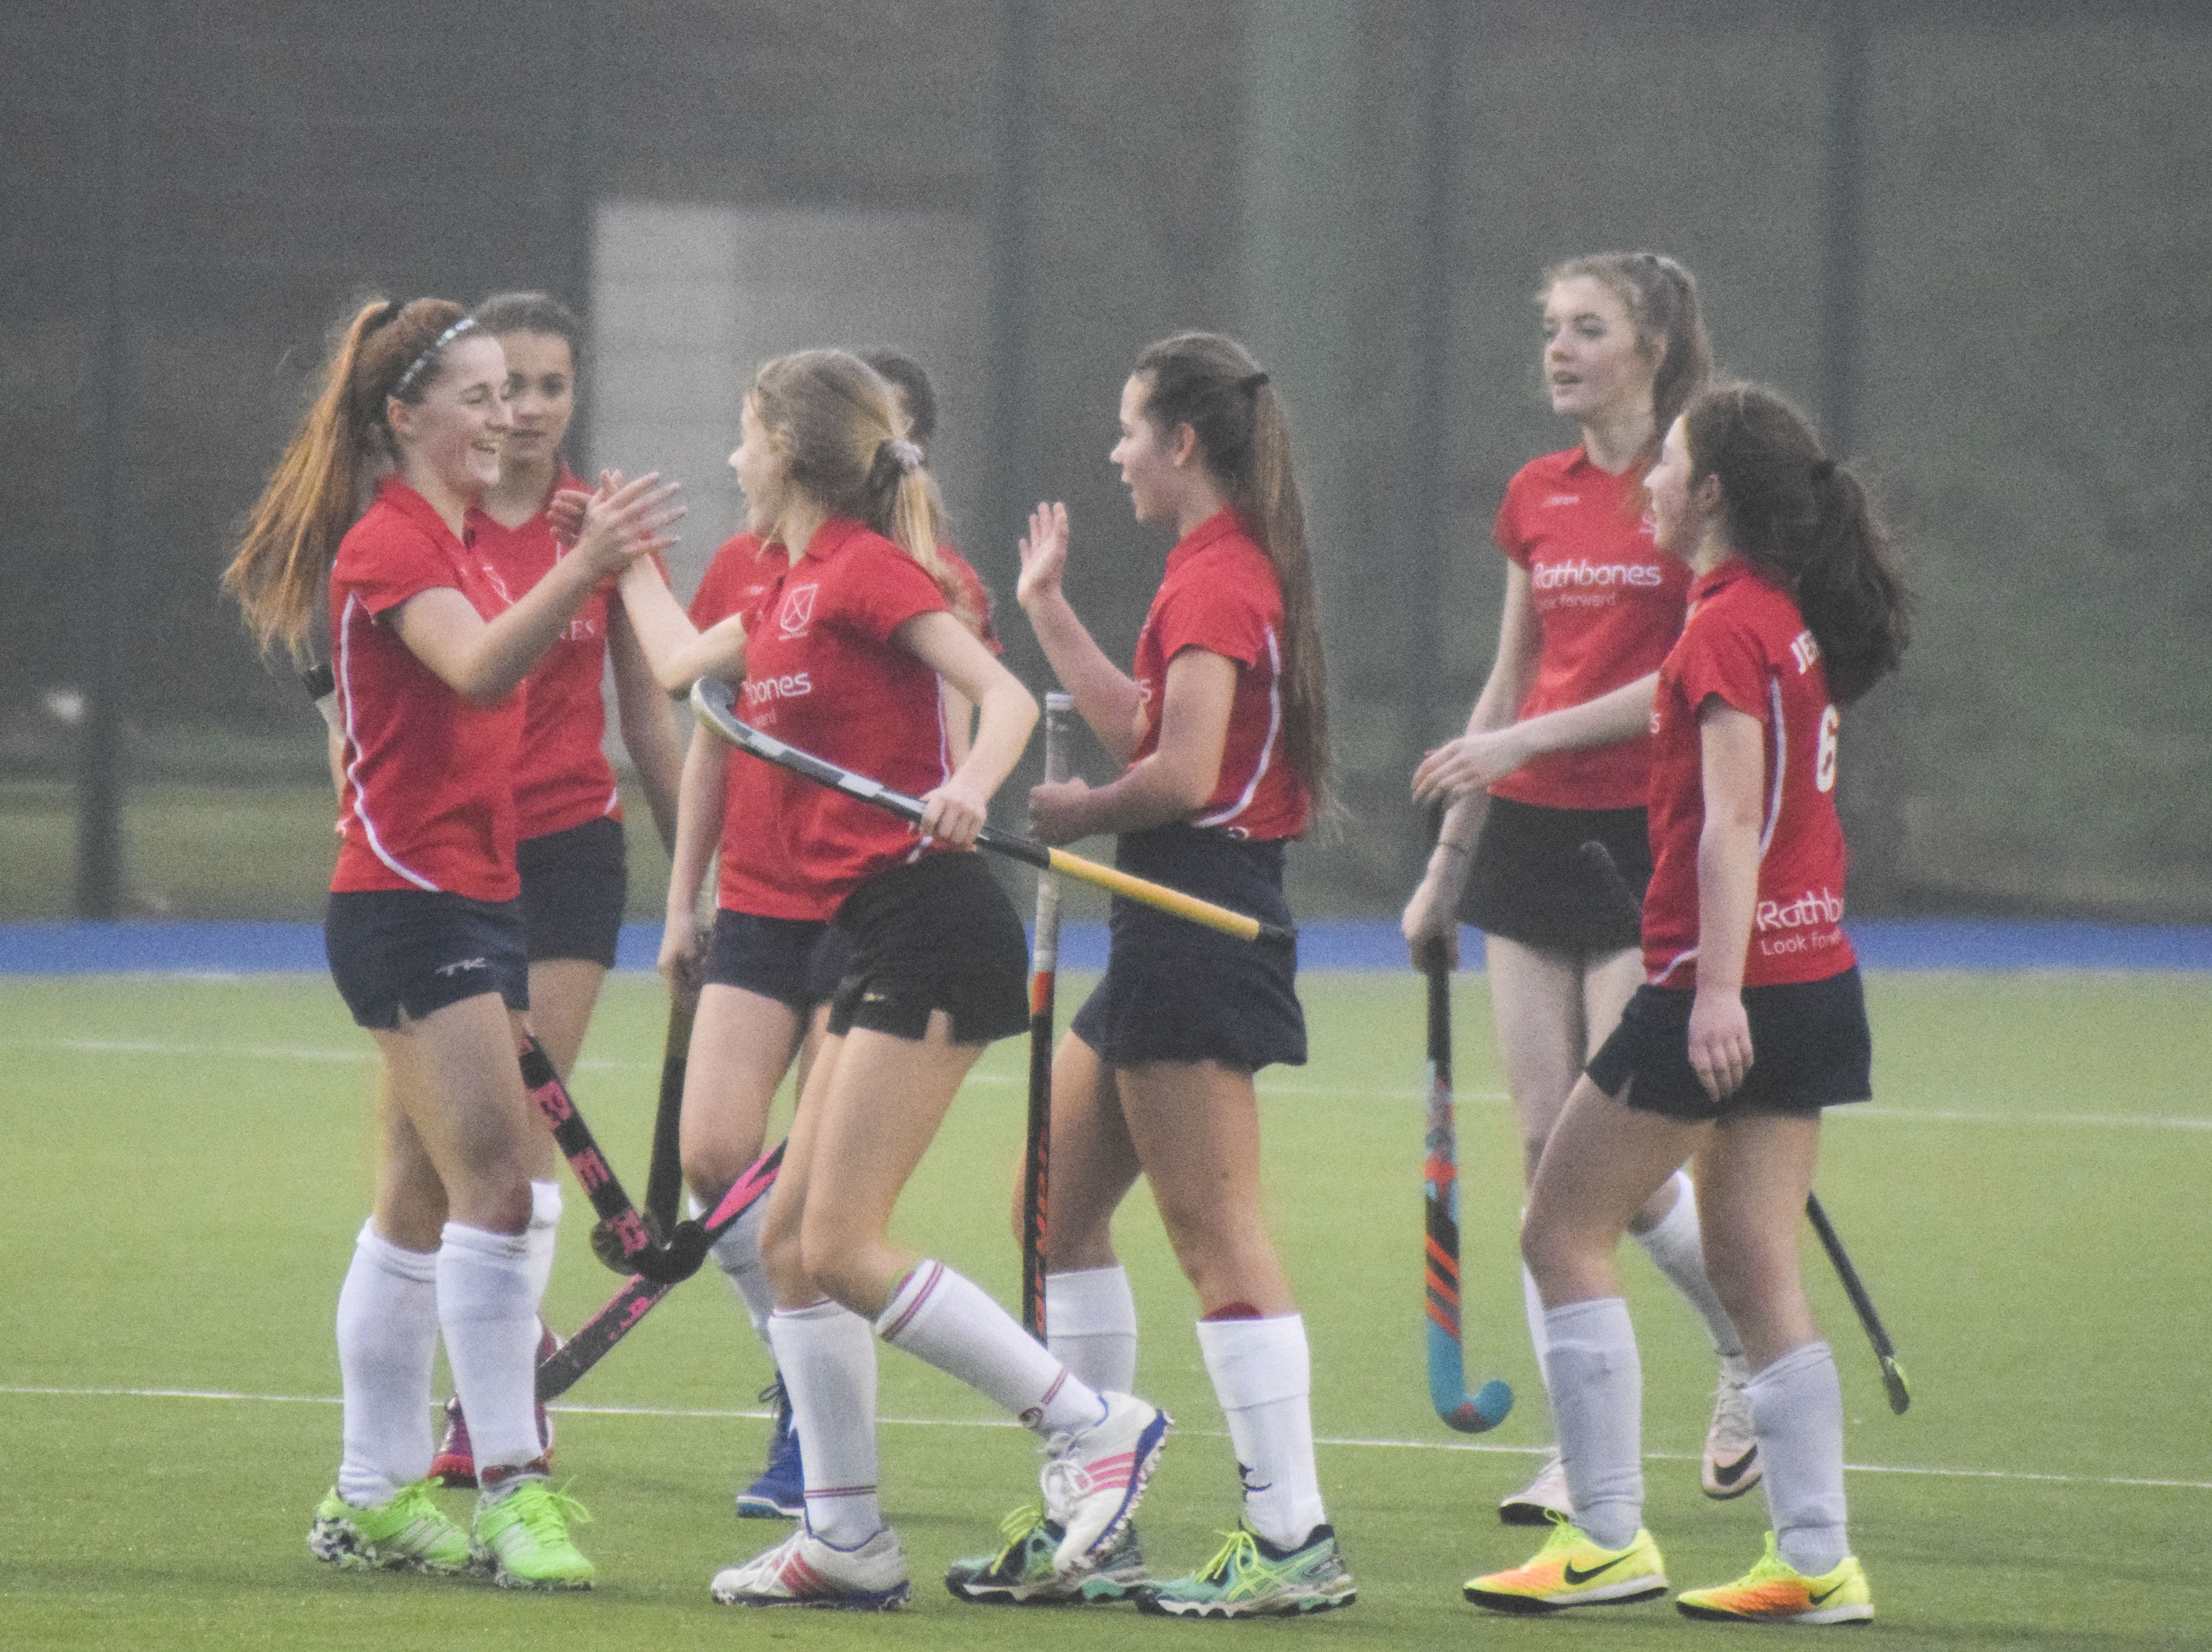 U 16 Boys' Hockey Report (Girls report to follow)